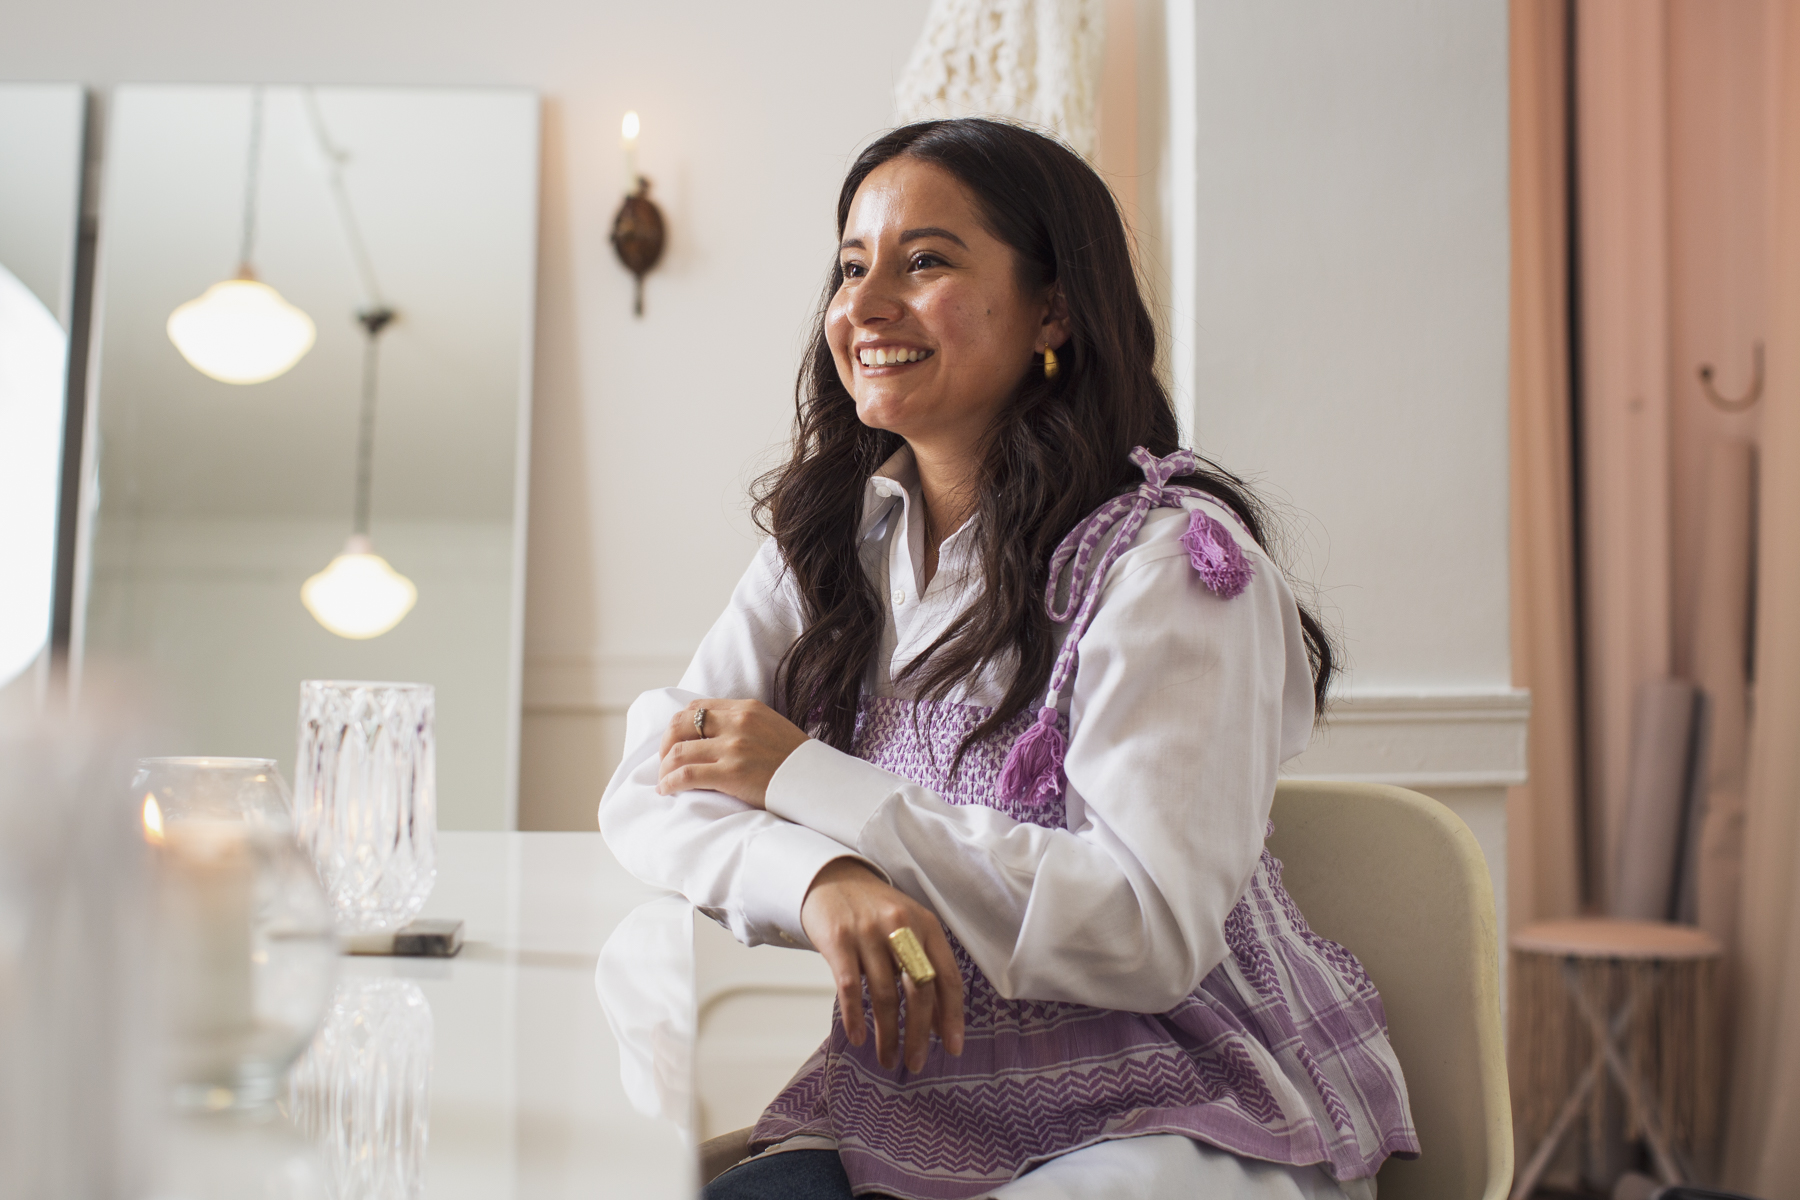 Image: Nelissa Carrillo is seated and smiling, facing away from the camera with her arms crossed and lightly resting on a reflective white table. The light casts a warm blush onto her face. The right side of the photo features peach lighting onto the dressing room of the showroom, and the left side of the photo is filled with a crystal glass, a candle, and the reflection of a pendant light in the large floor mirror. Lavender pompoms fall off of Carrillo's shoulders onto her vintage white button down, and a gold statement ring on her right hand catches light from the pendant light. Photo by Kristie Kahns.